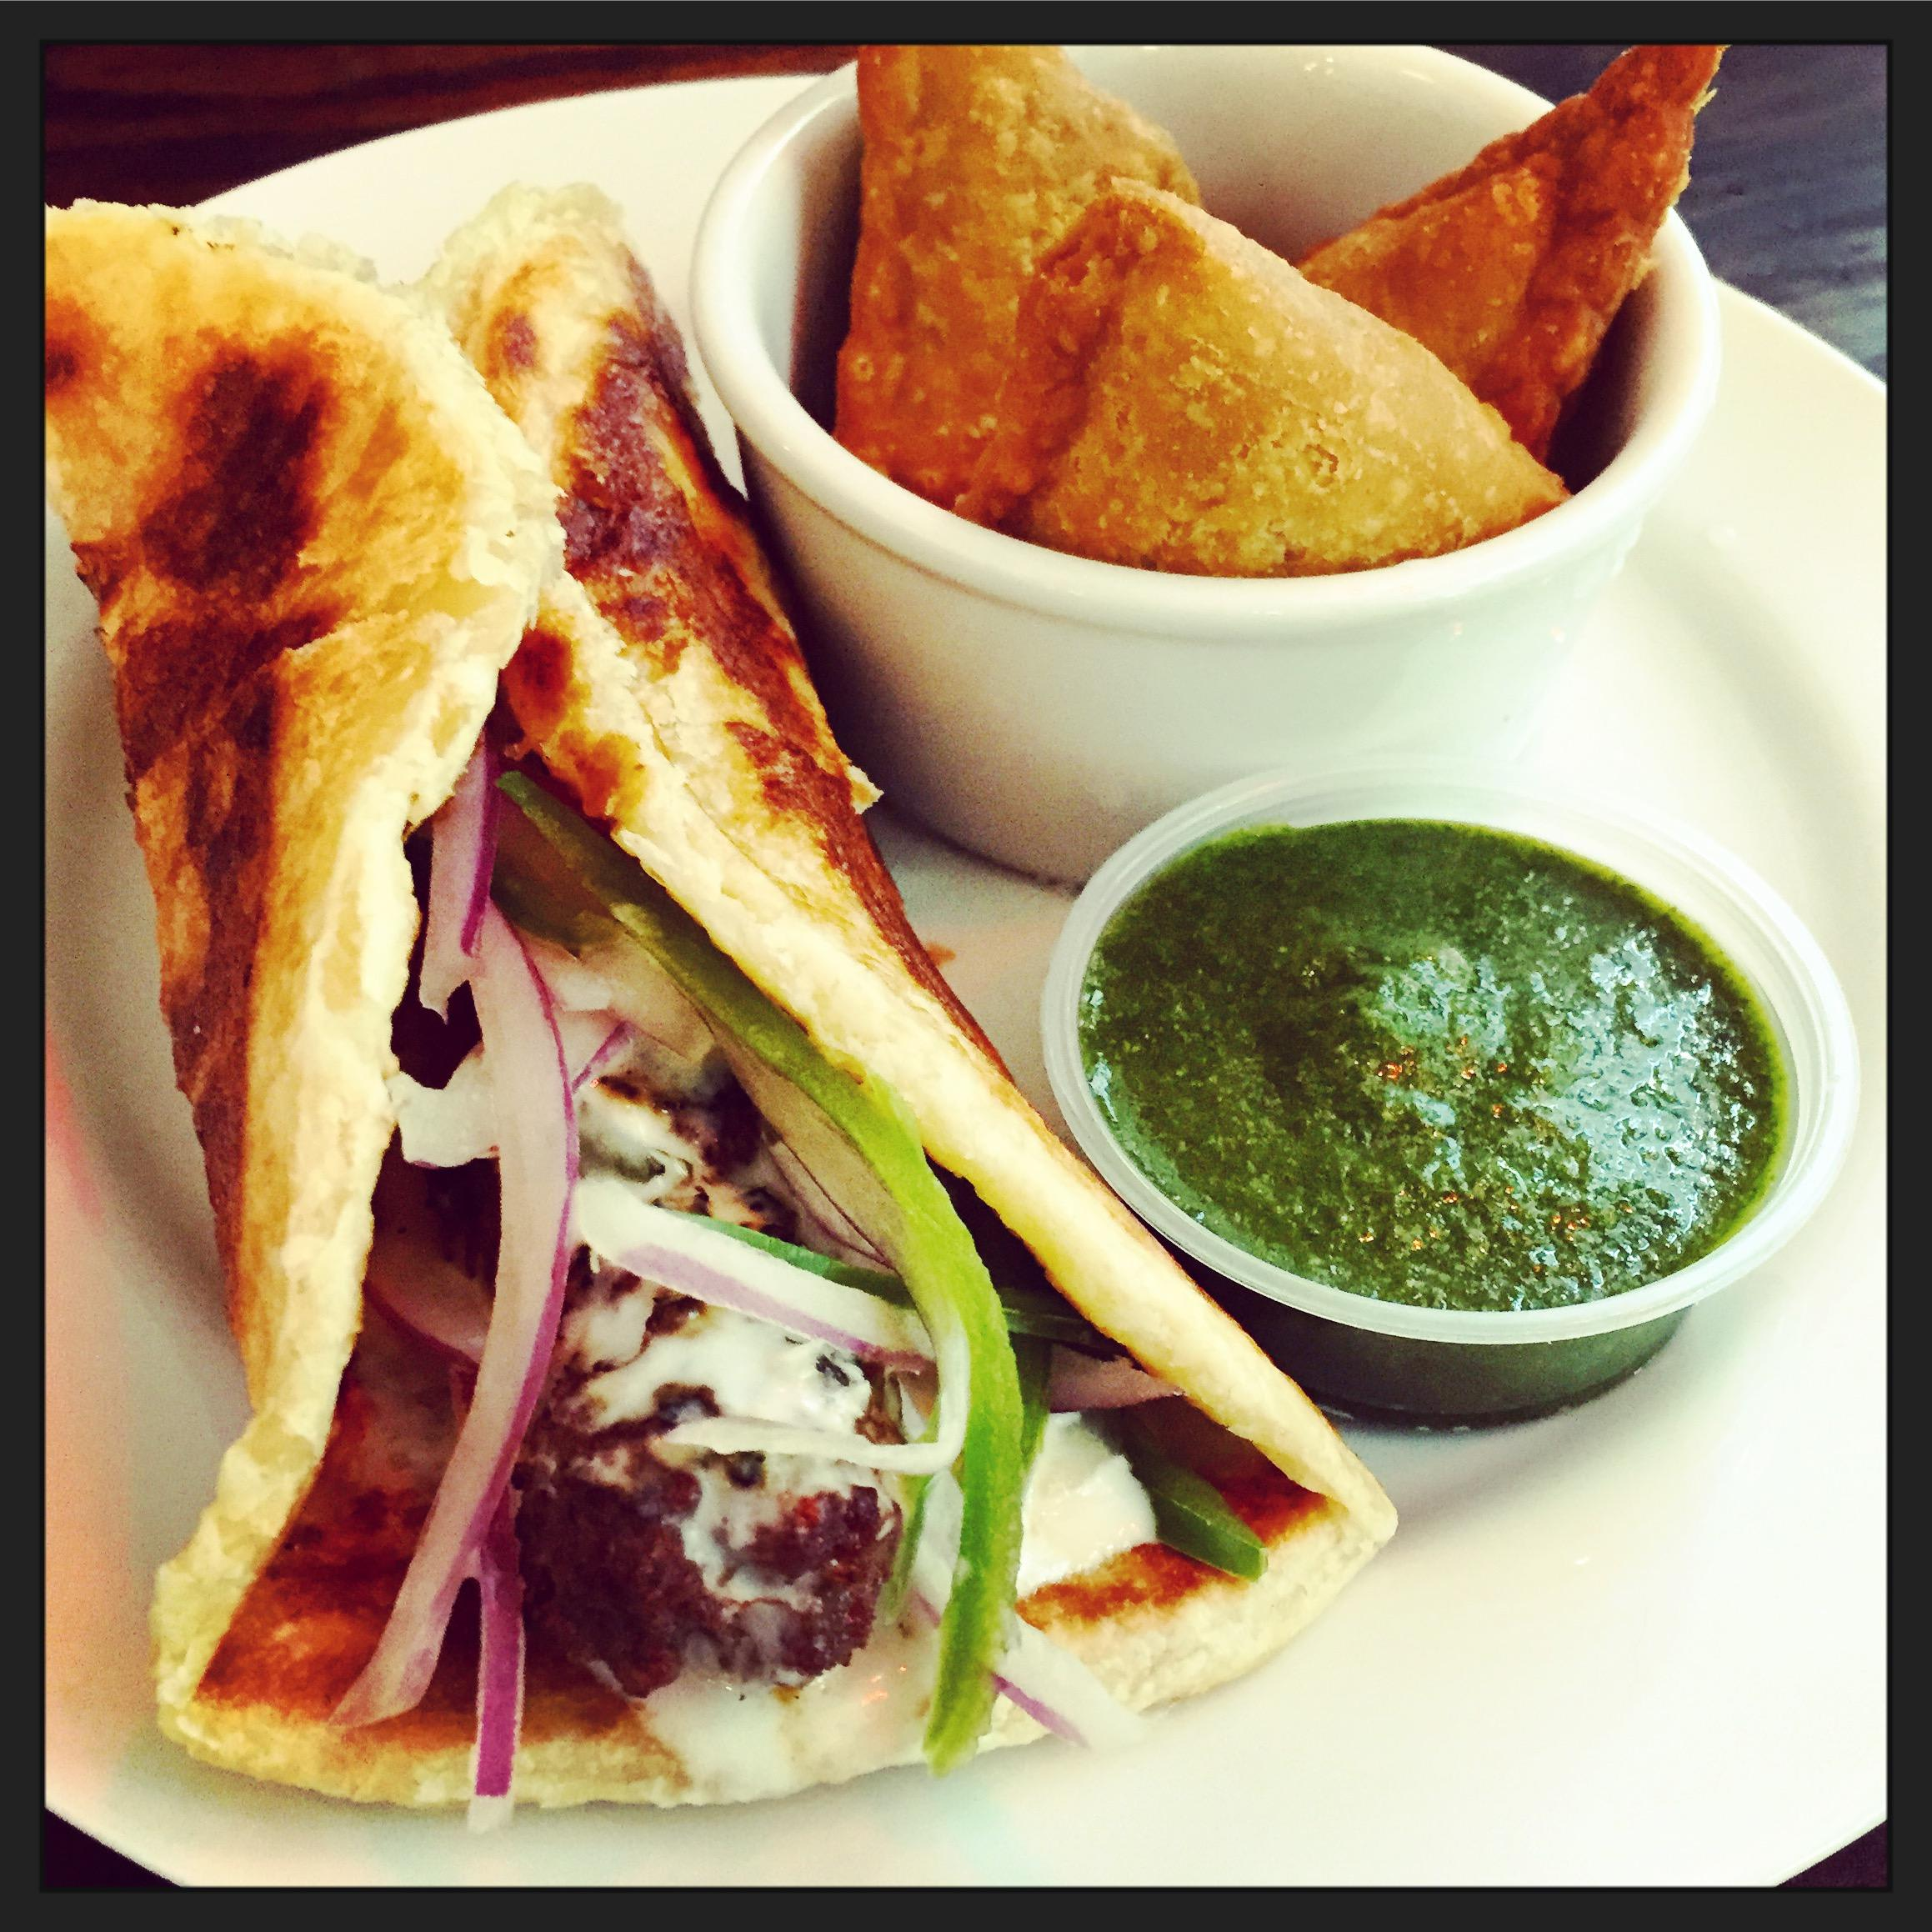 Beef Kebab with cool yogurt & finished with shredded cabbage, lettuce & jalapenos at Bombay Wraps